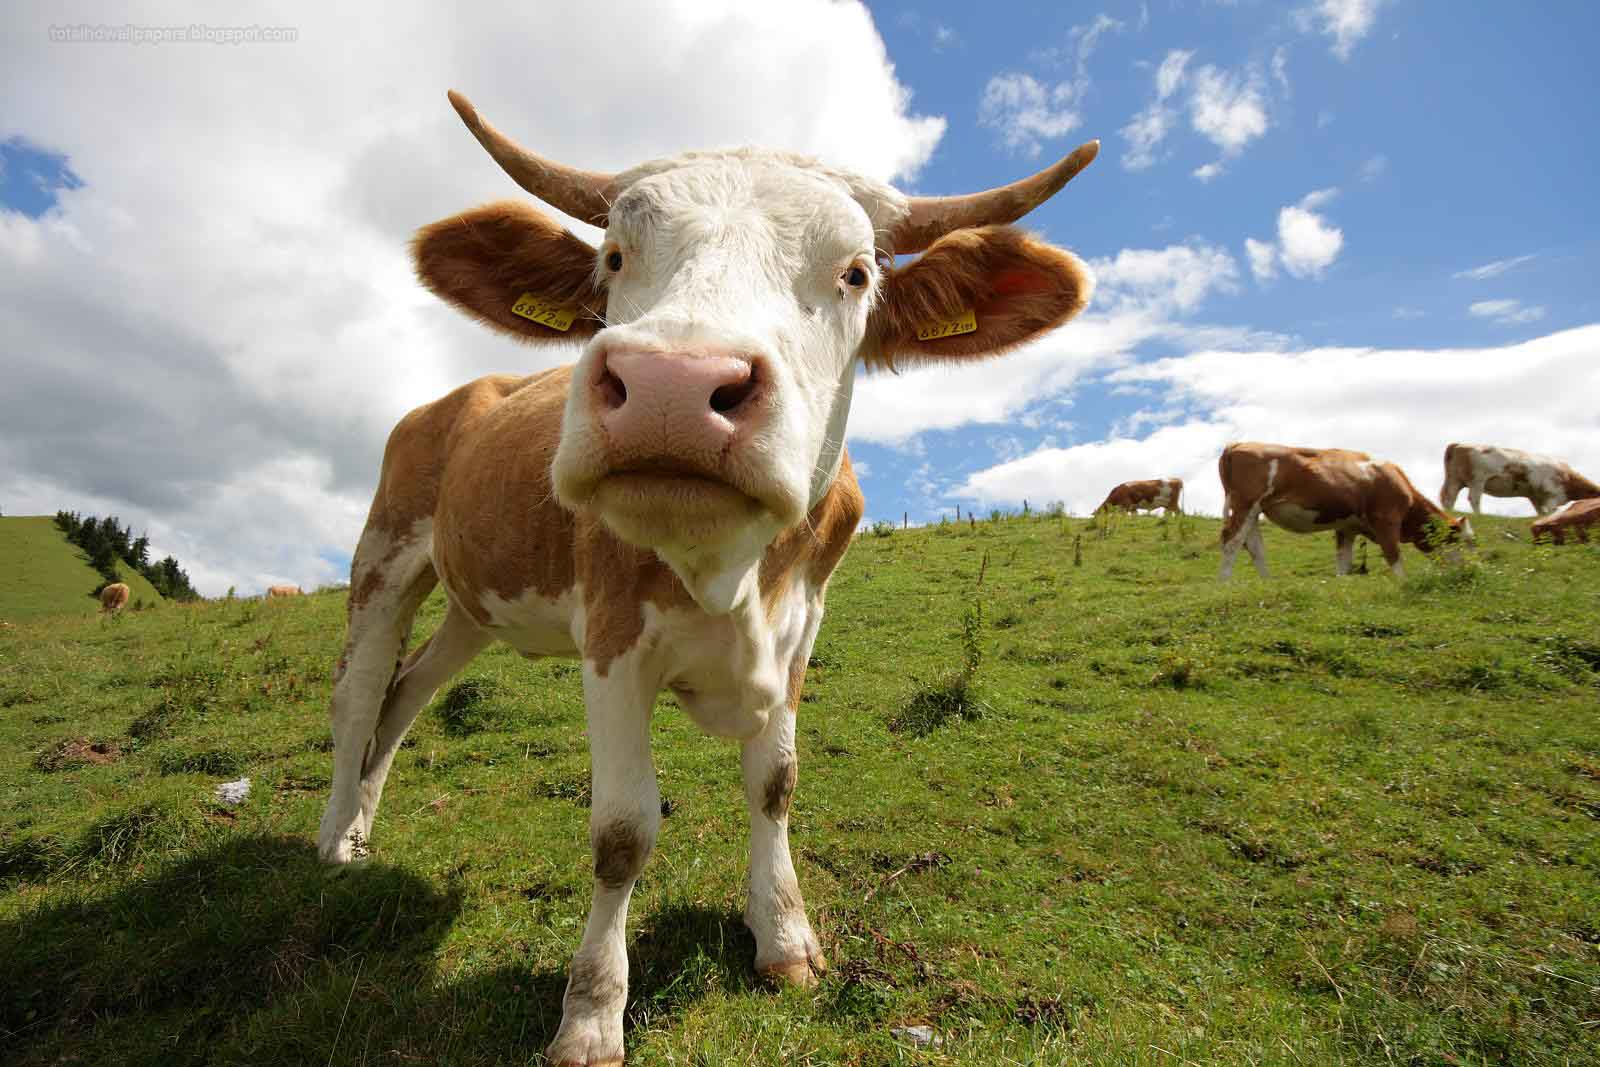 Free All Wallpaper Beautifull Cow Wallpapers Hd